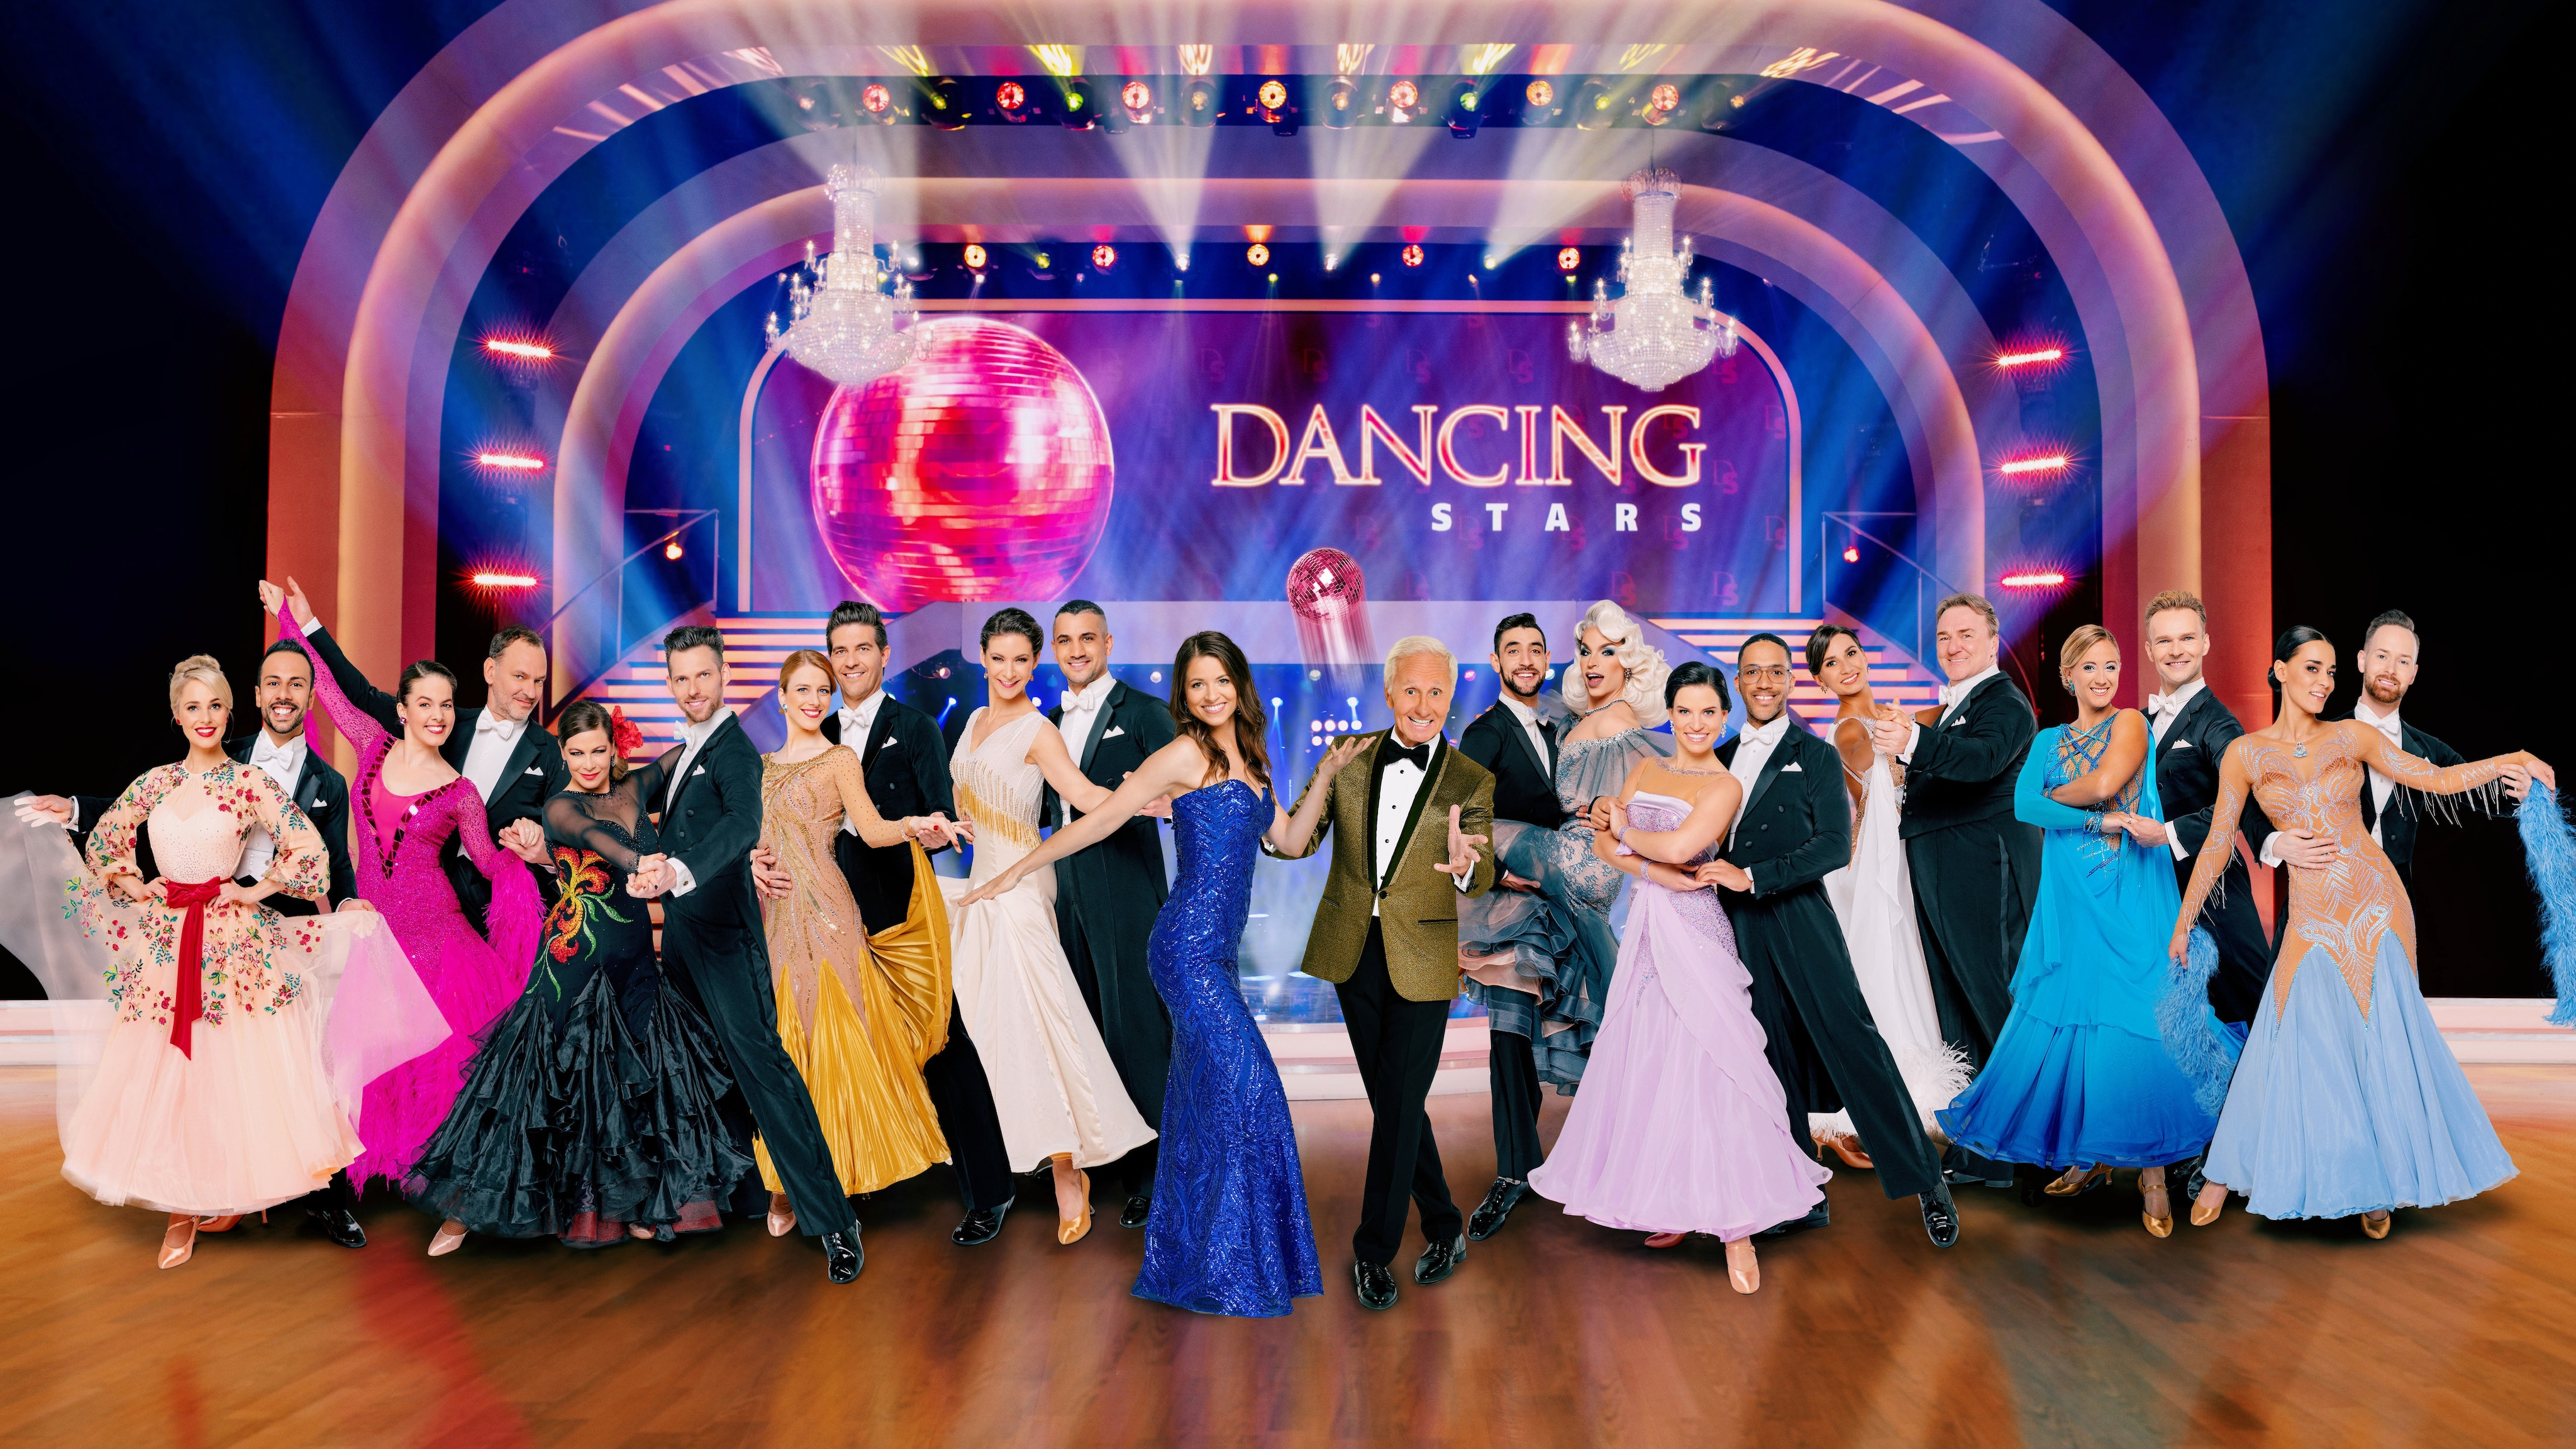 Dancing Stars Orf